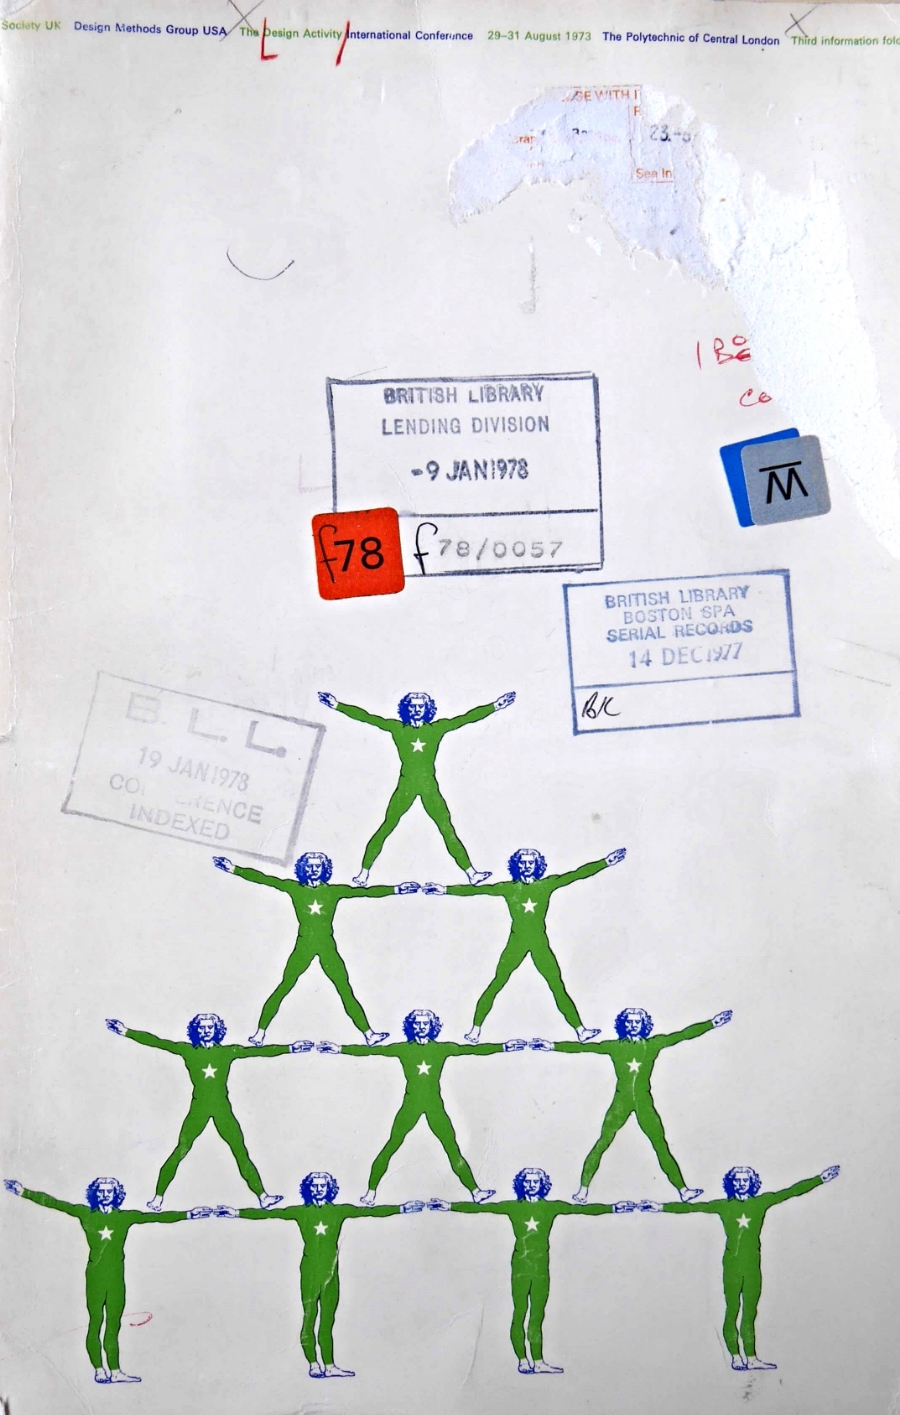 """The cover of the """"Third Information Folder"""" of the DRS/DMG Design Activity International Conference, 29-31 August 1973. Not many copies of this folder appear to have survived. A """"Second Information Folder"""" has the same motif as a tightrope walker, in blue, holding an umbrella. There may have been a """"First Information Folder"""" but this is as yet unseen. A poster for the conference has a juggler (in red)"""